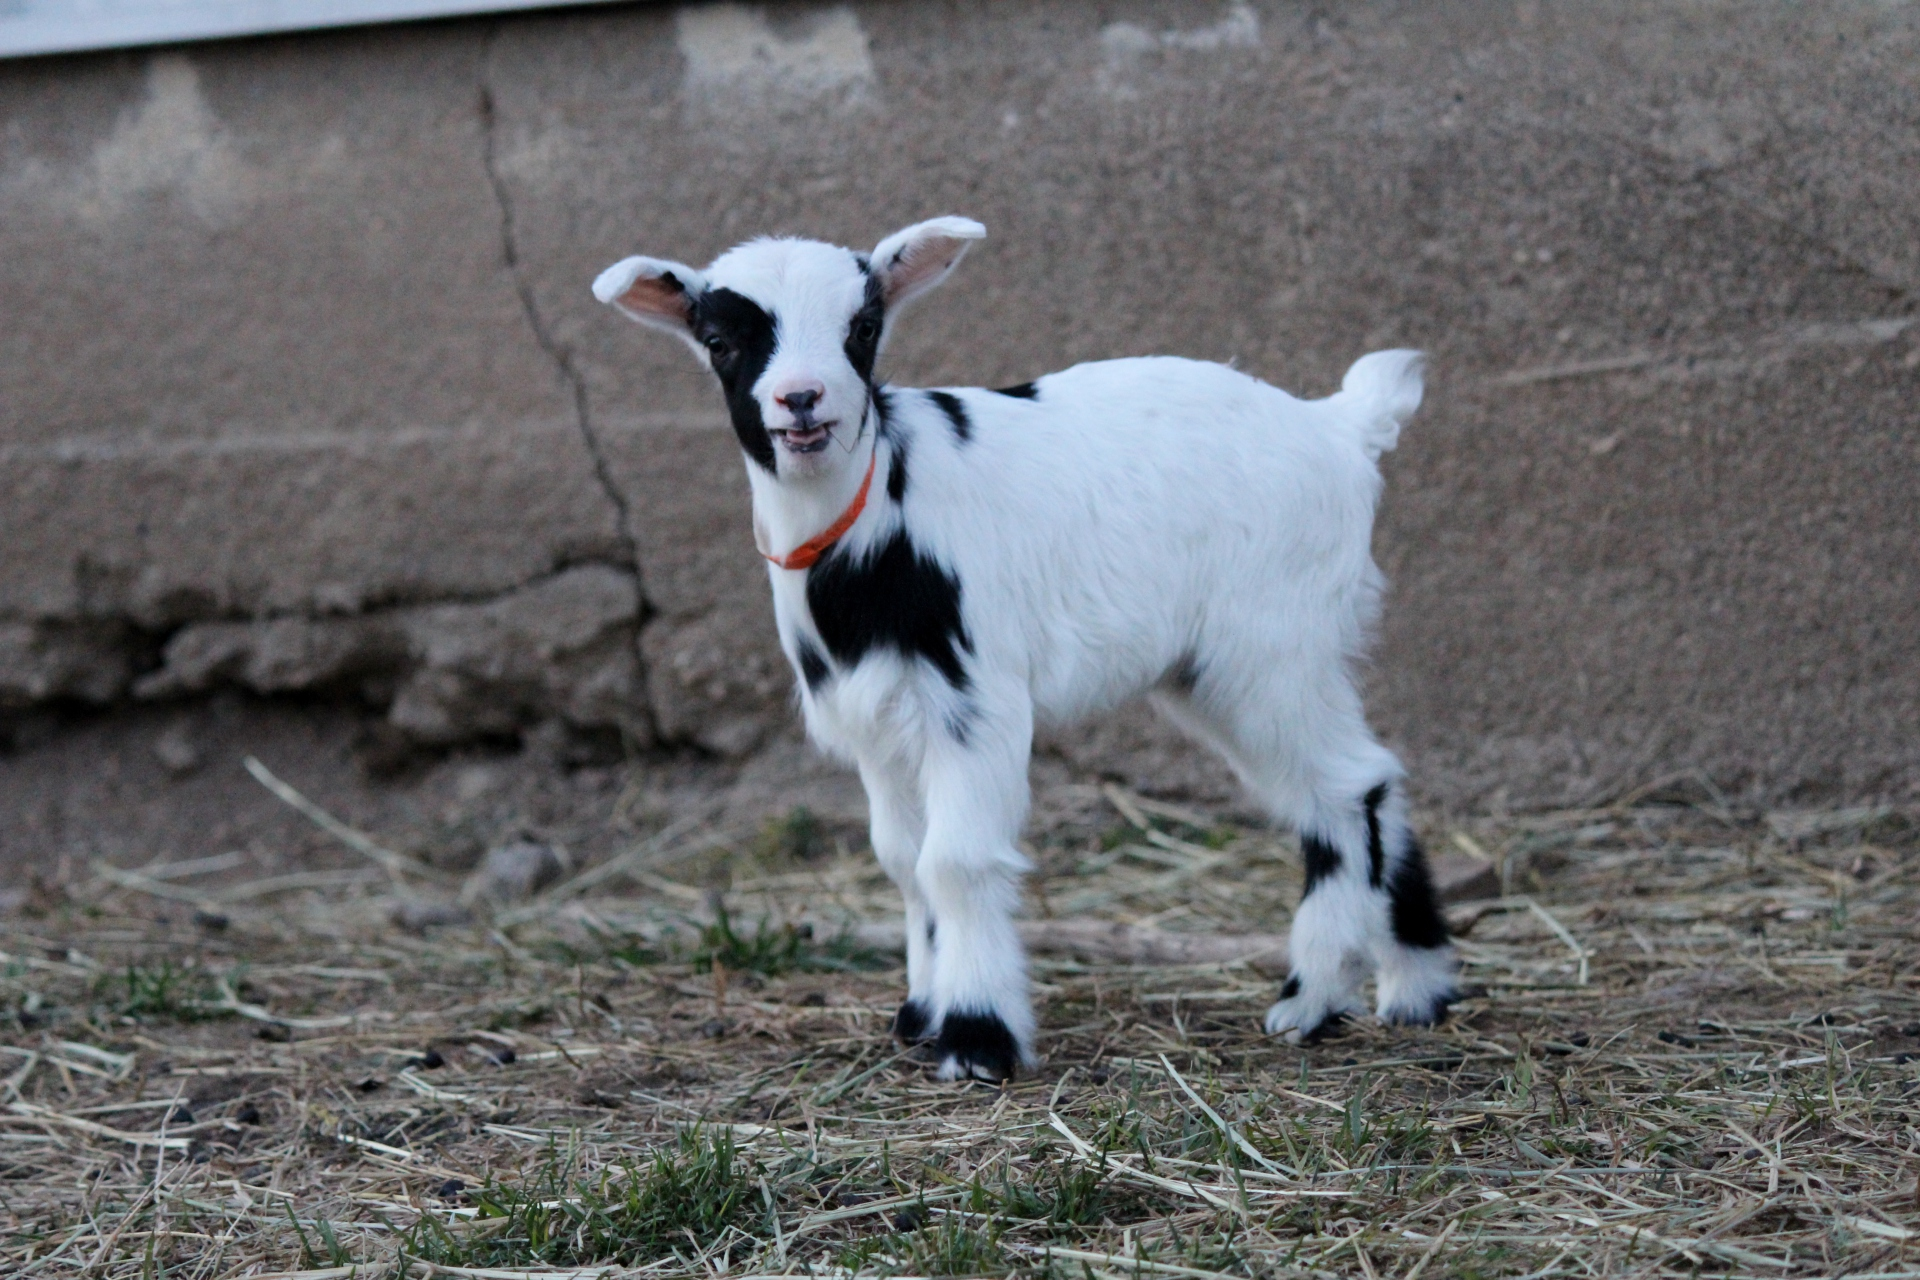 Goat Tails